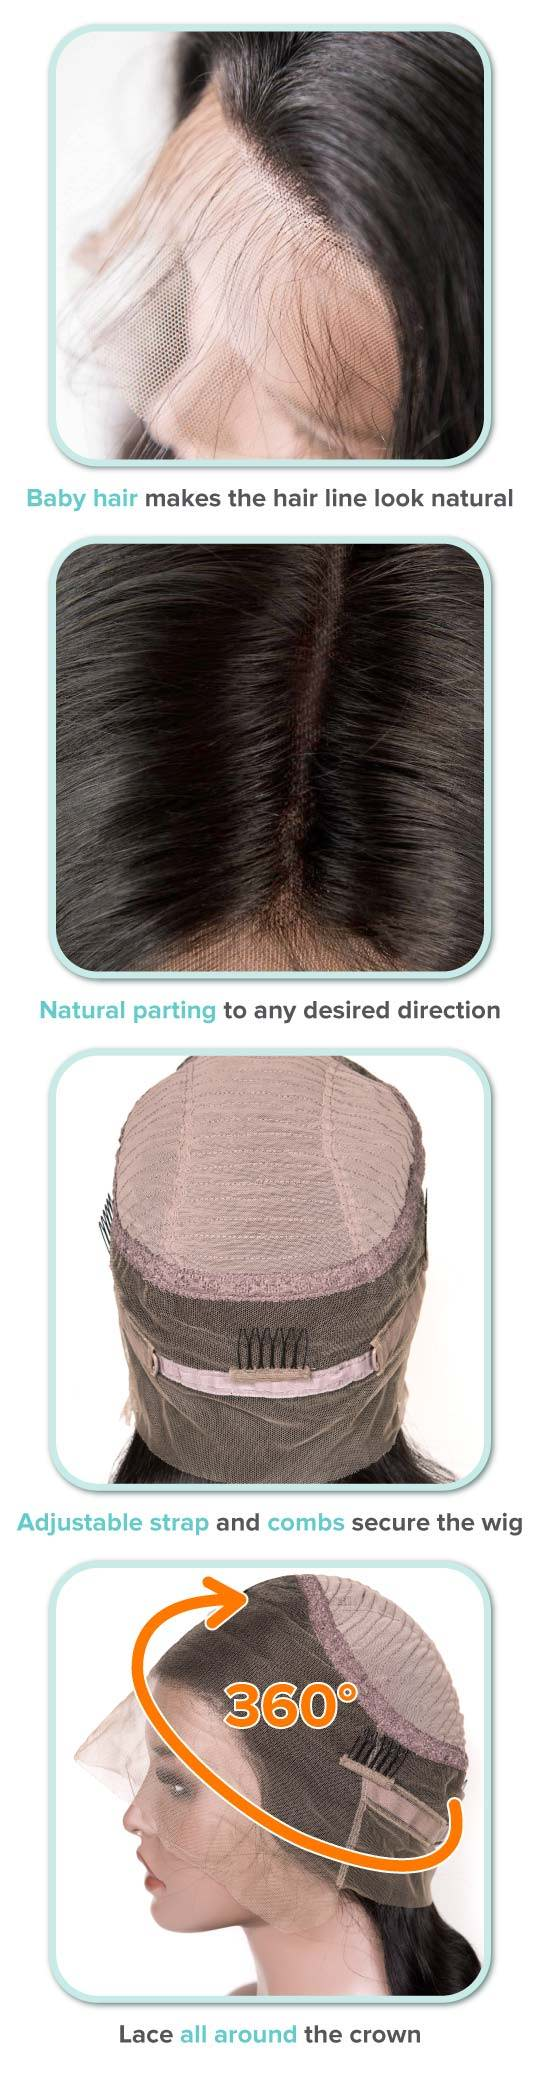 wigs that look like natural hair